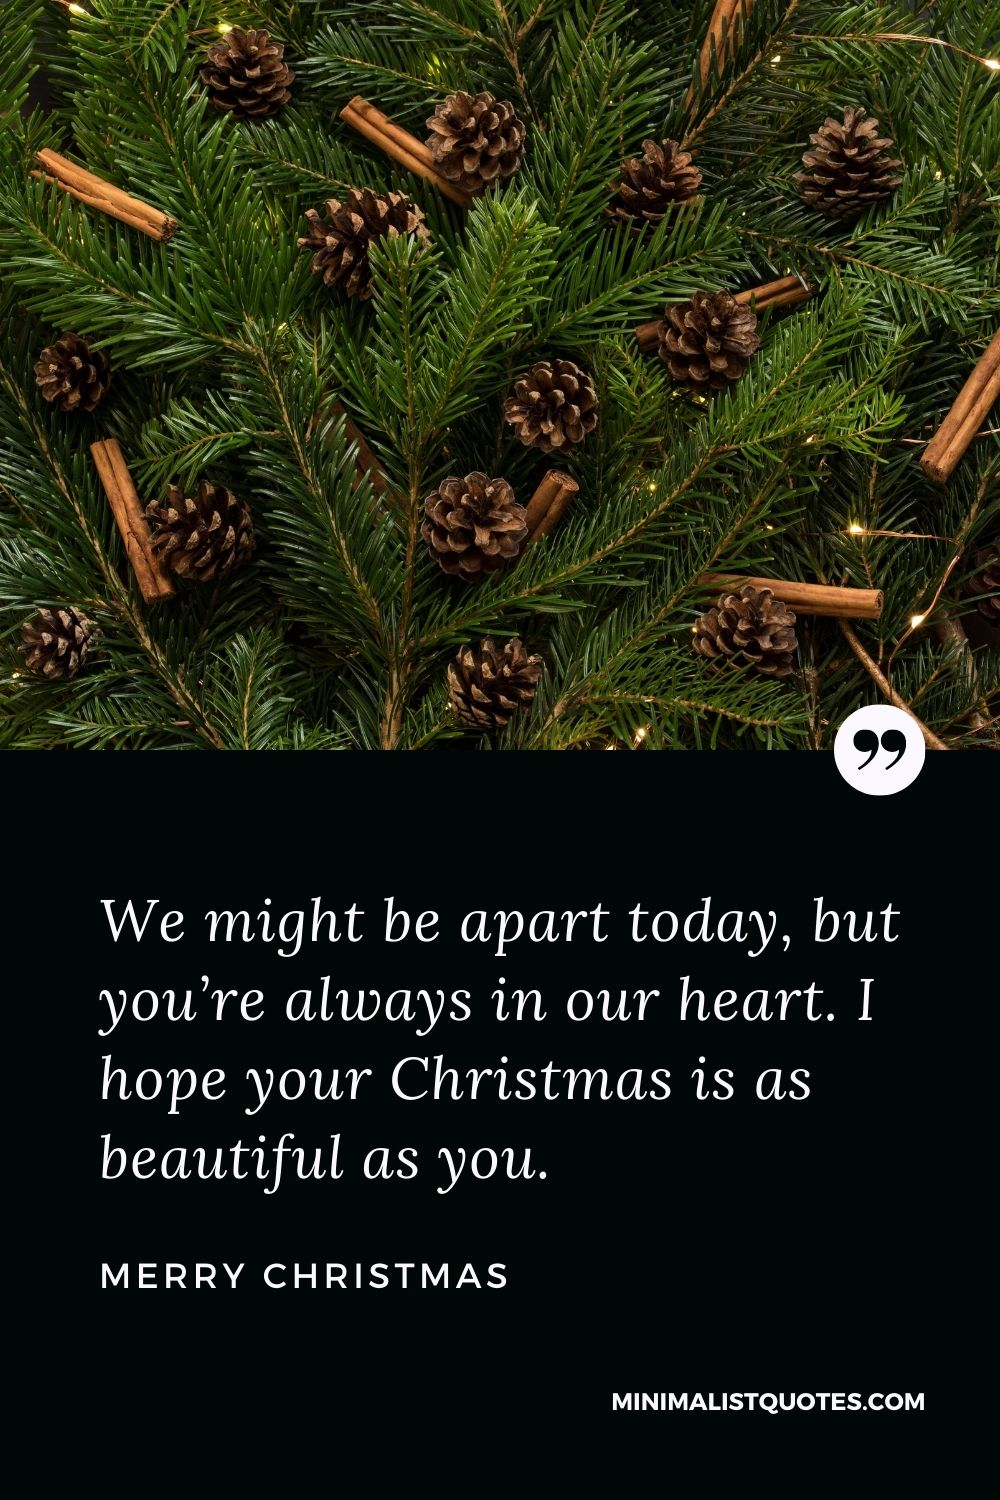 Merry Christmas Wish - We might be apart today, but you're always in our heart. I hope your Christmas is as beautiful as you.